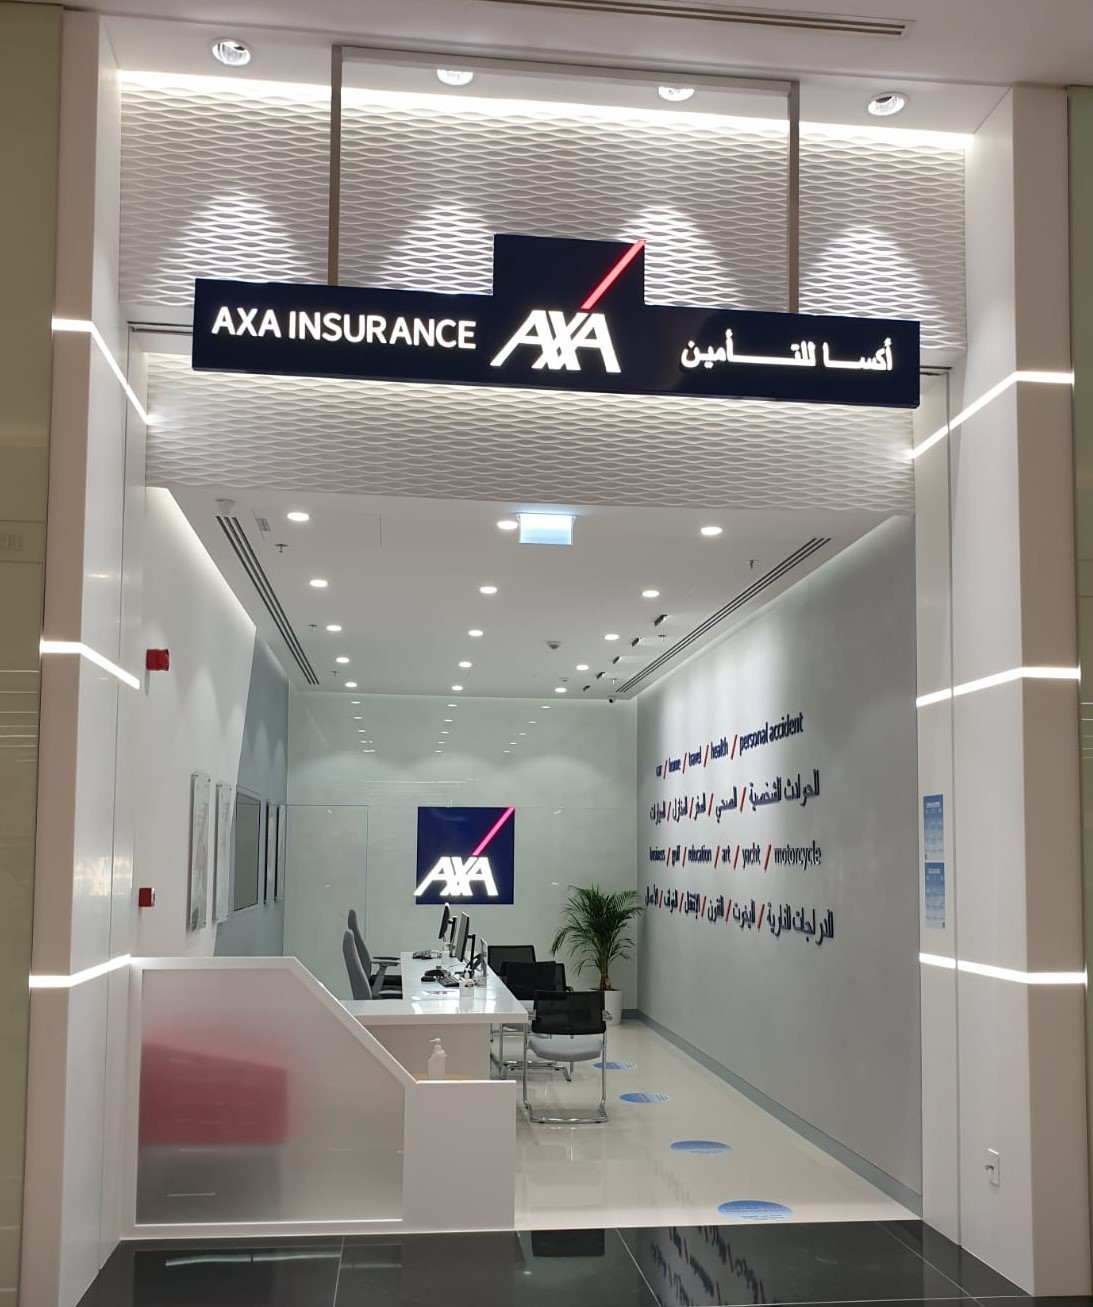 AXA Insurance Fitout works at Bahrain City Center